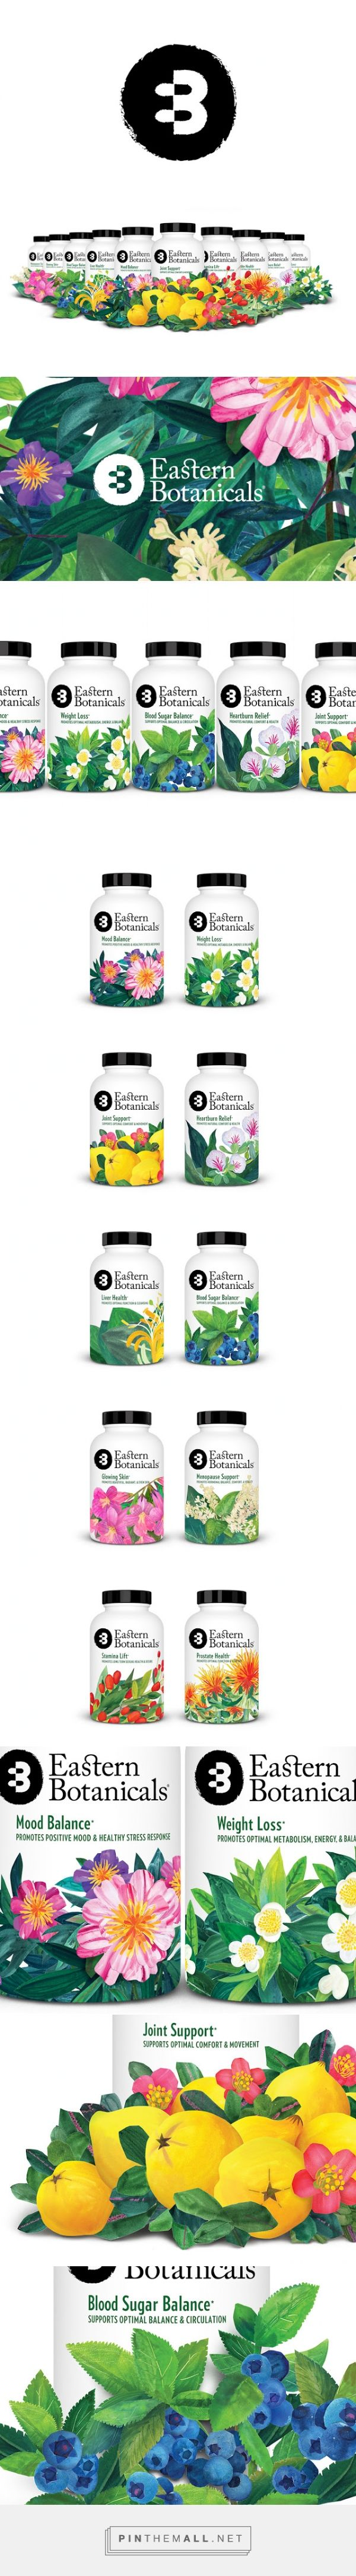 Eastern Botanicals Herbal Packaging - design by Rice Creative PD